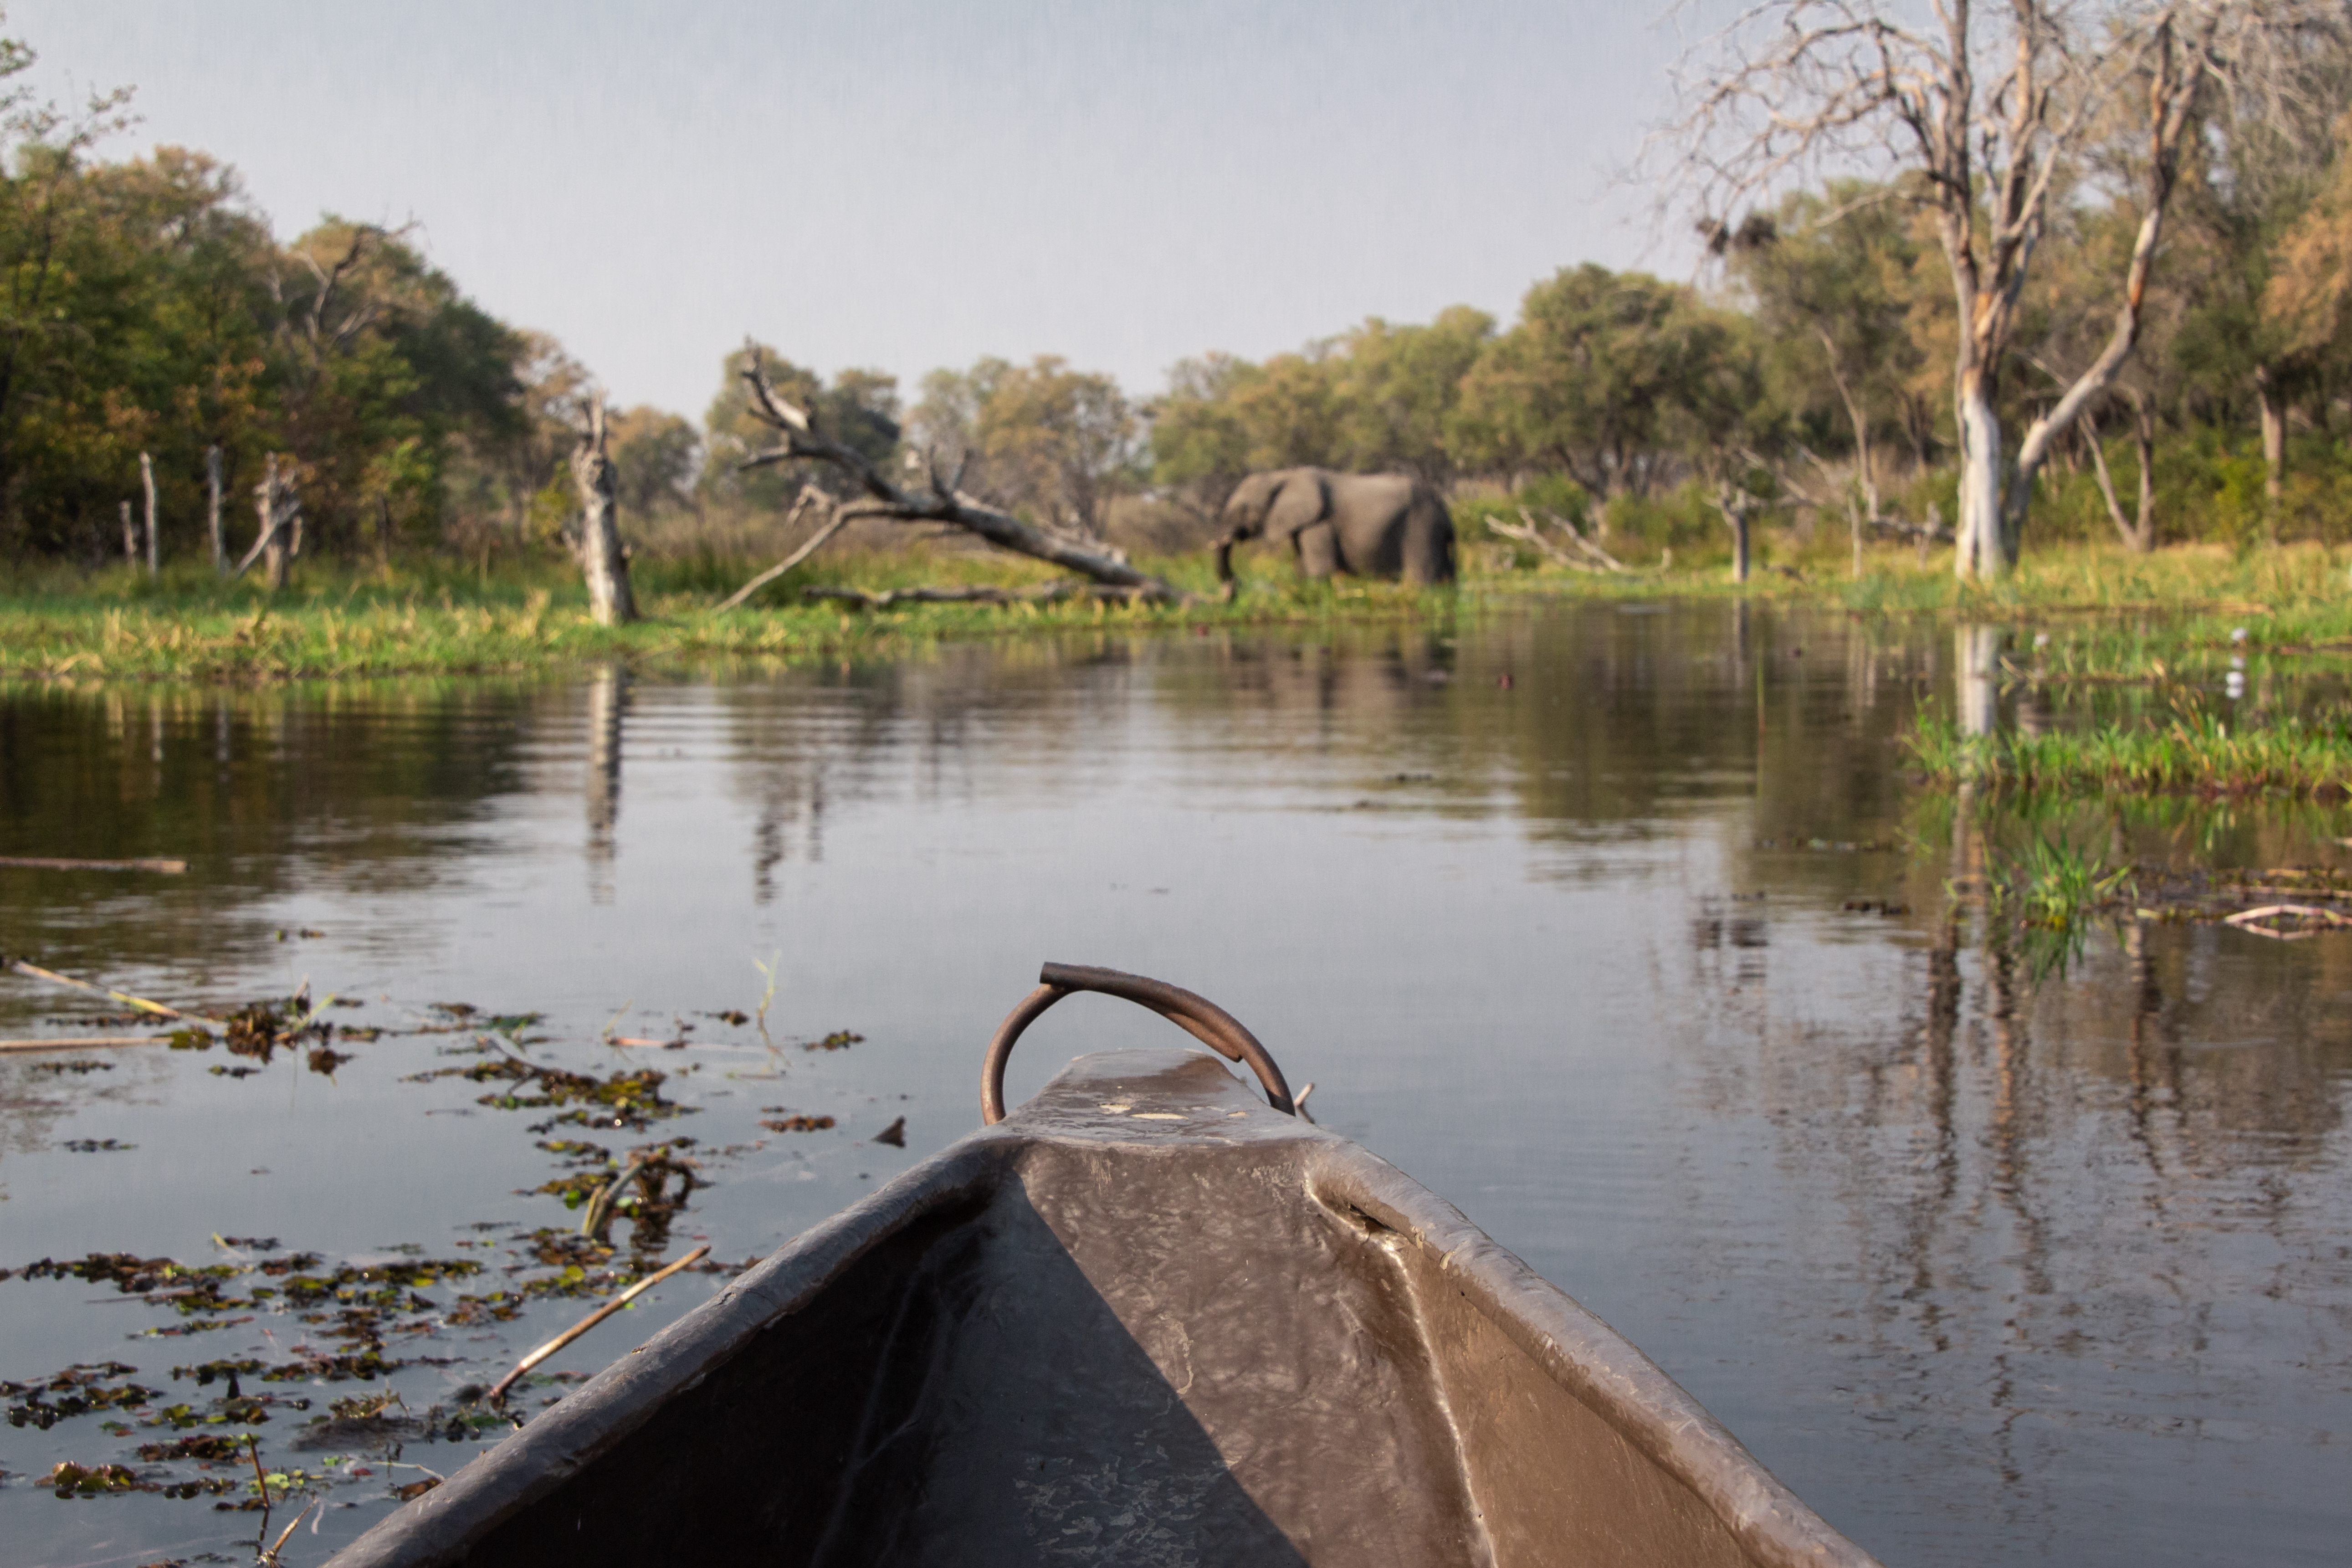 View from a traditional dugout canoe called Mokoro on a Botswana Safari in Khwai.